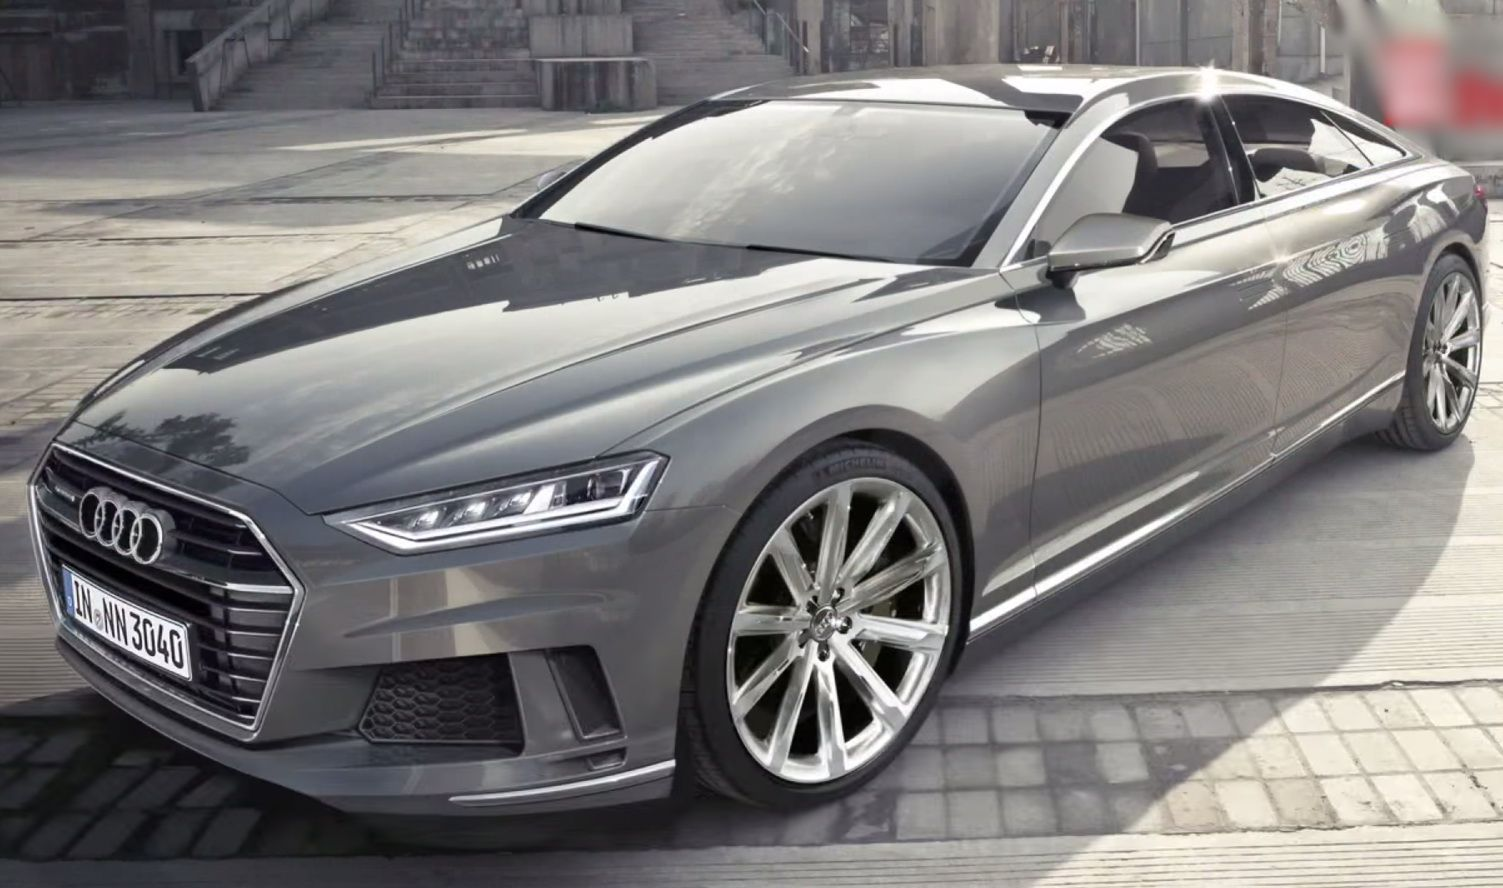 2016 Audi A9 Redesign And Expected Price The 2016 Audi A9 Is Expected To Be A St…